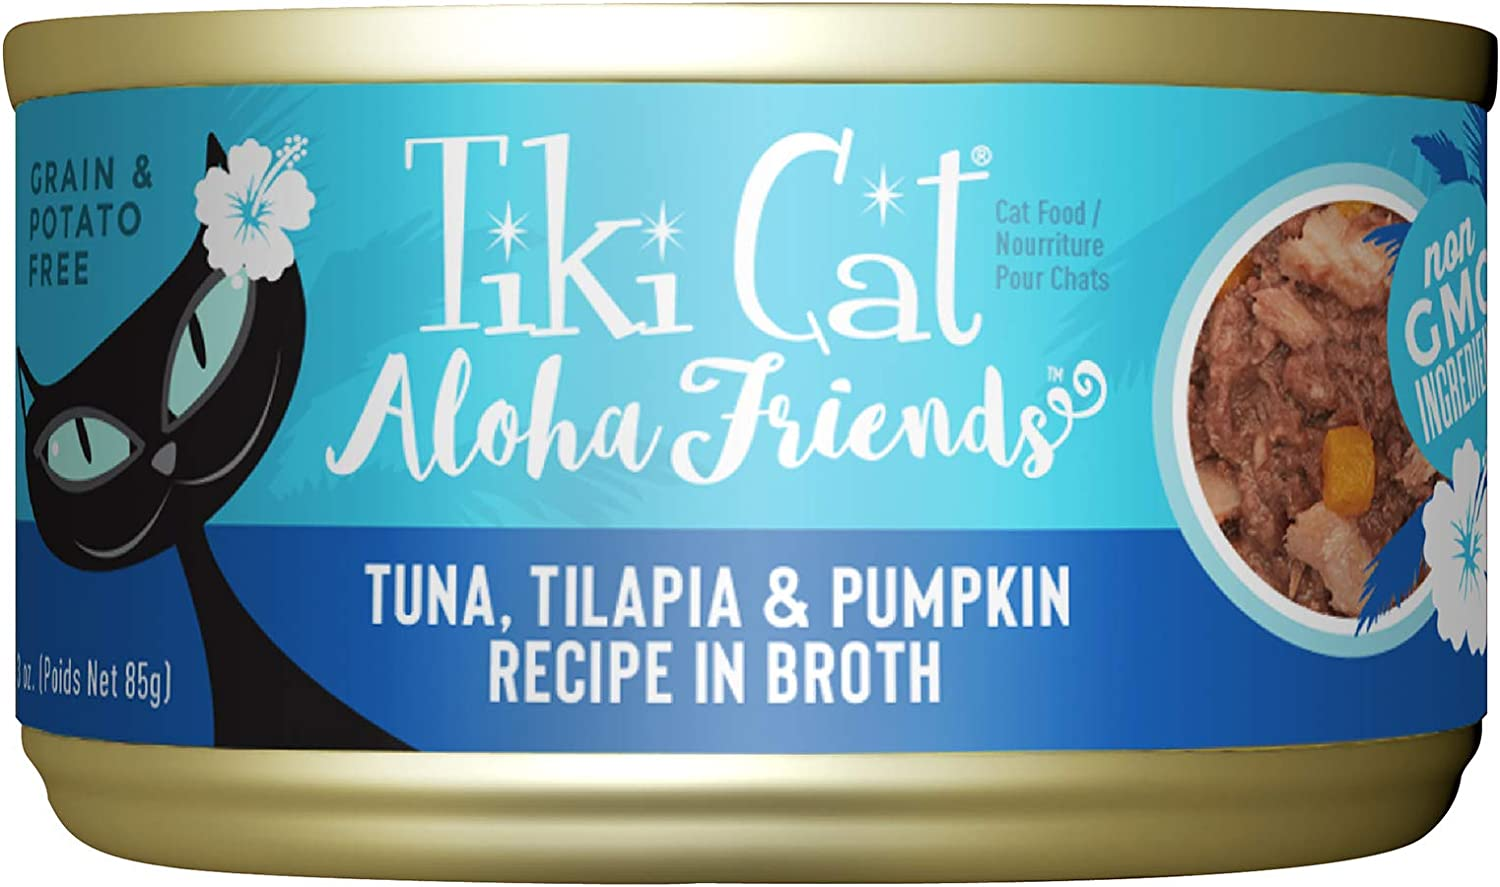 Tiki Cat Aloha Friends Grain Free Wet Cat Food for All Life Stages - Seafood with Pumpkin Recipes 3 oz. Cans (Pack of 12)